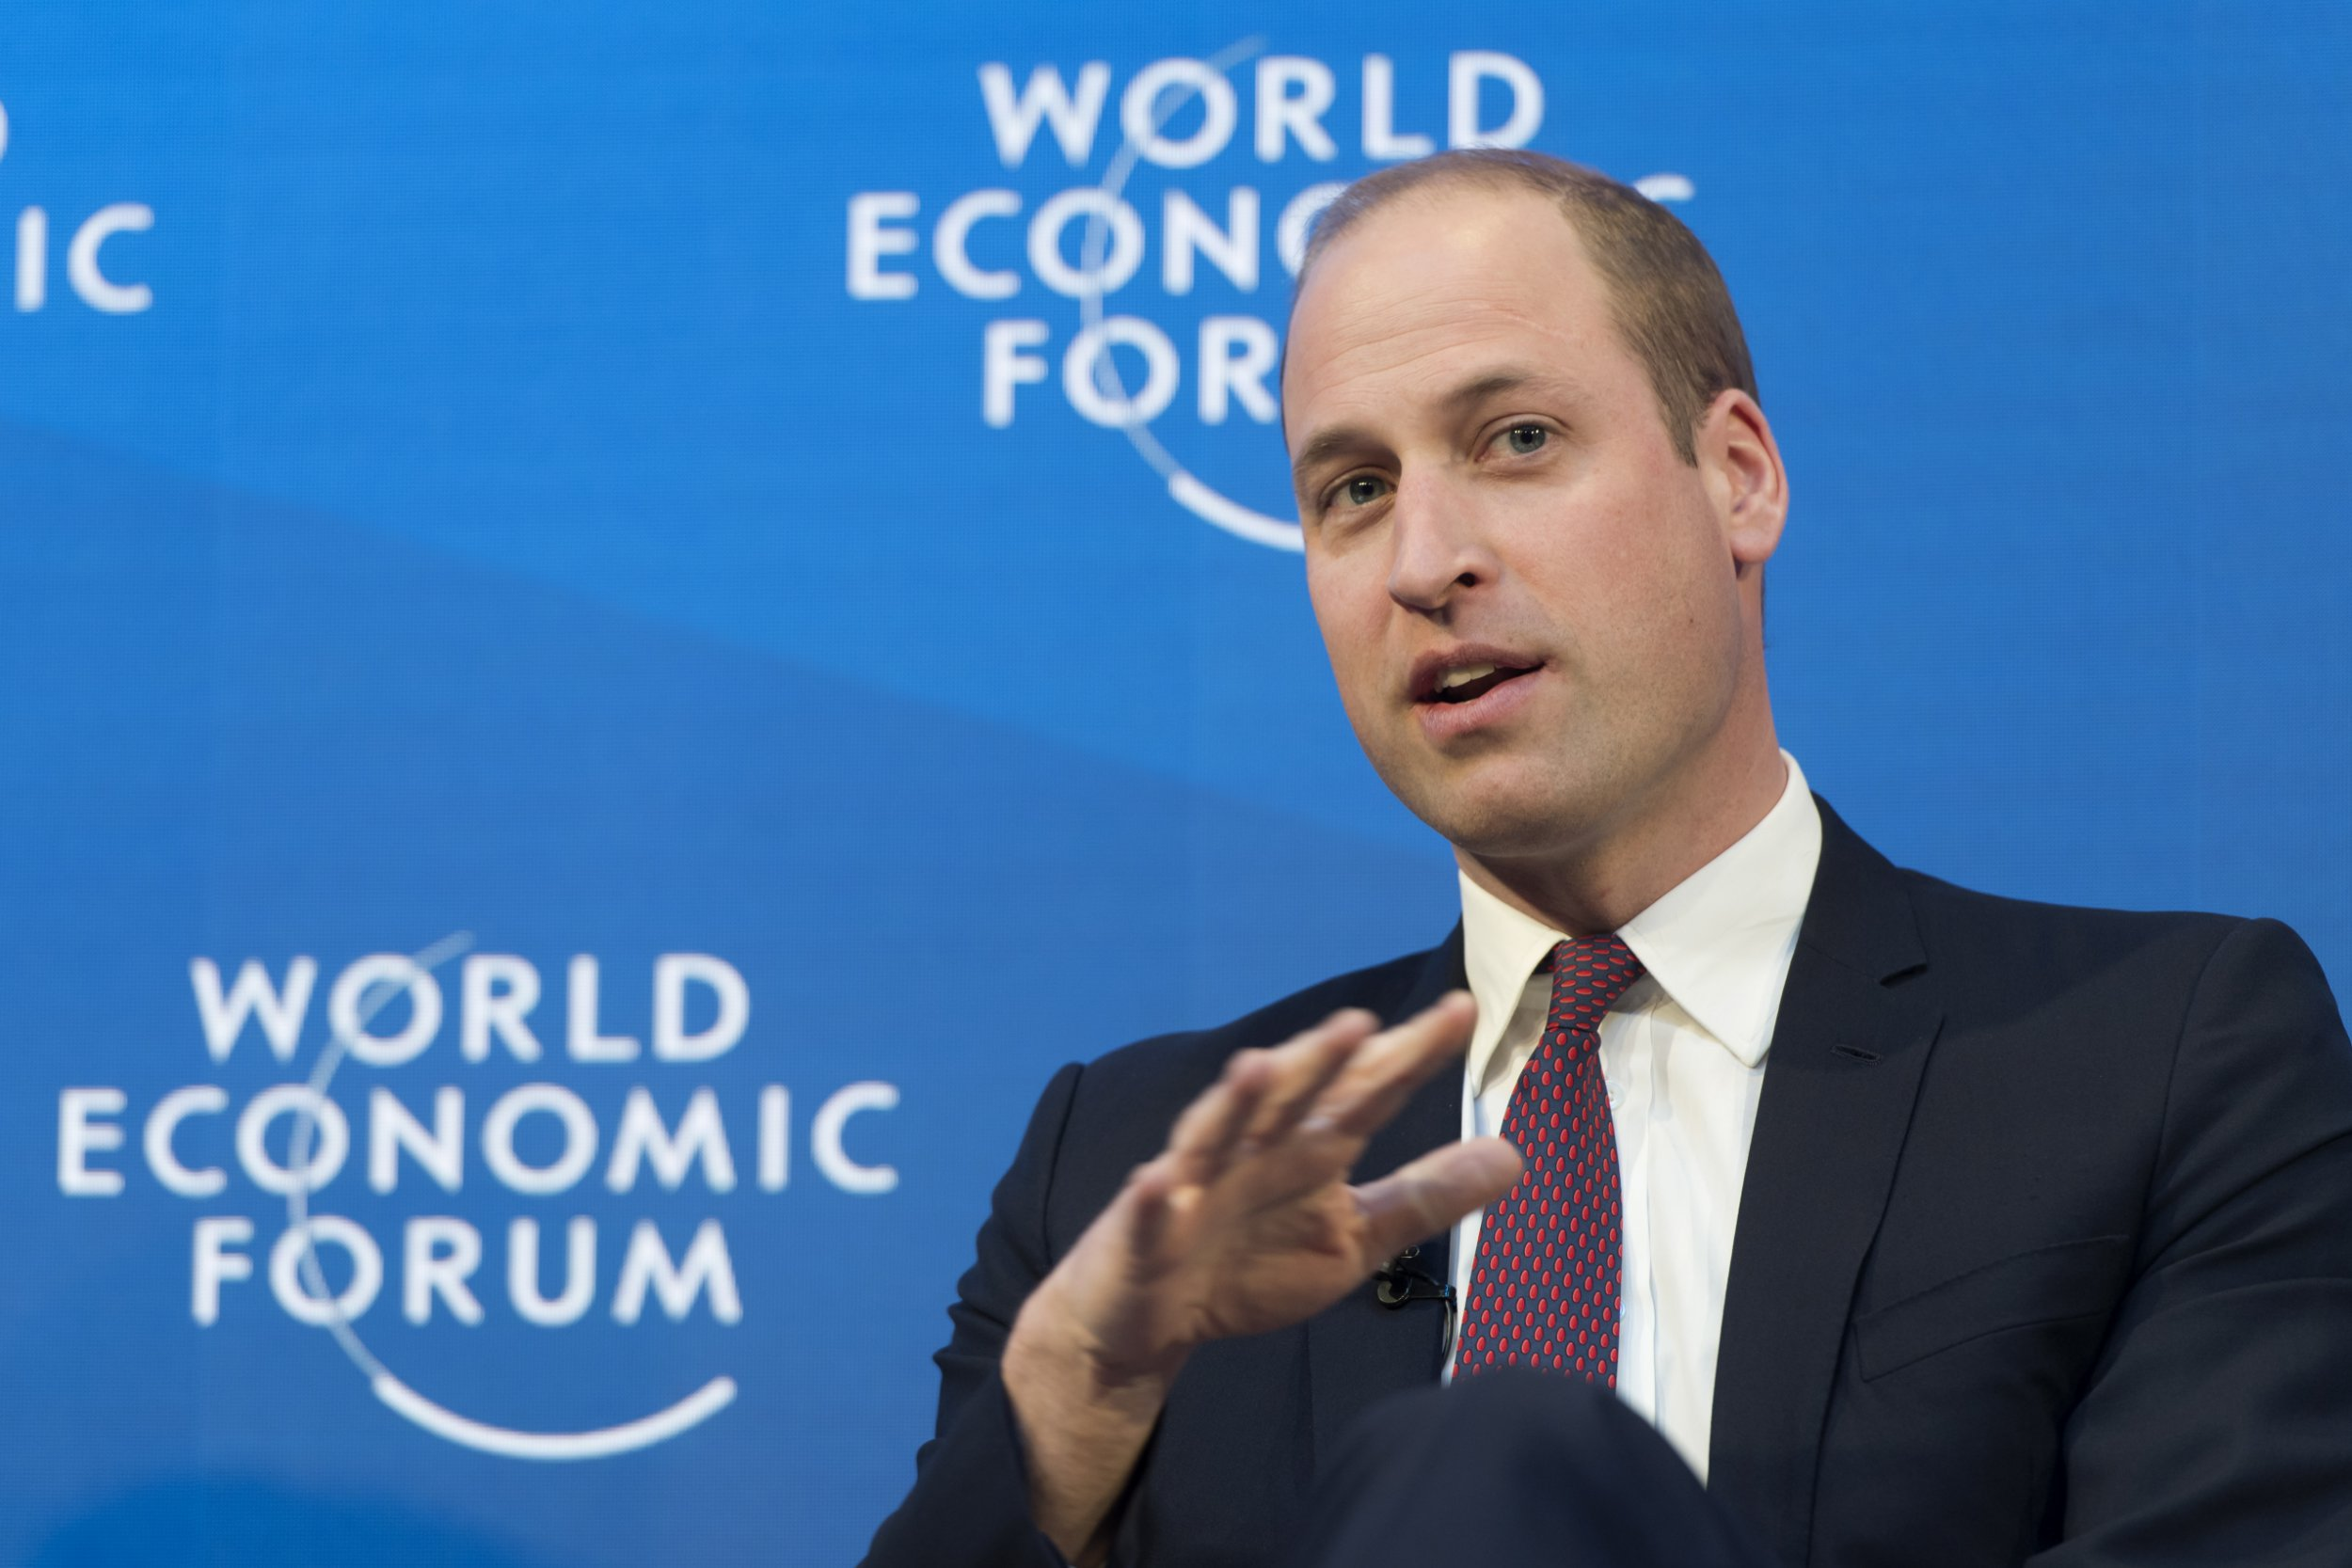 epa07312525 Prince William, The Duke of Cambridge, speaks during a panel session during the 49th Annual Meeting of the World Economic Forum, WEF, in Davos, Switzerland, 23 January 2019. The meeting brings together entrepreneurs, scientists, corporate and political leaders in Davos under the topic 'Globalization 4.0' from 22 to 25 January 2019. EPA/LAURENT GILLIERON